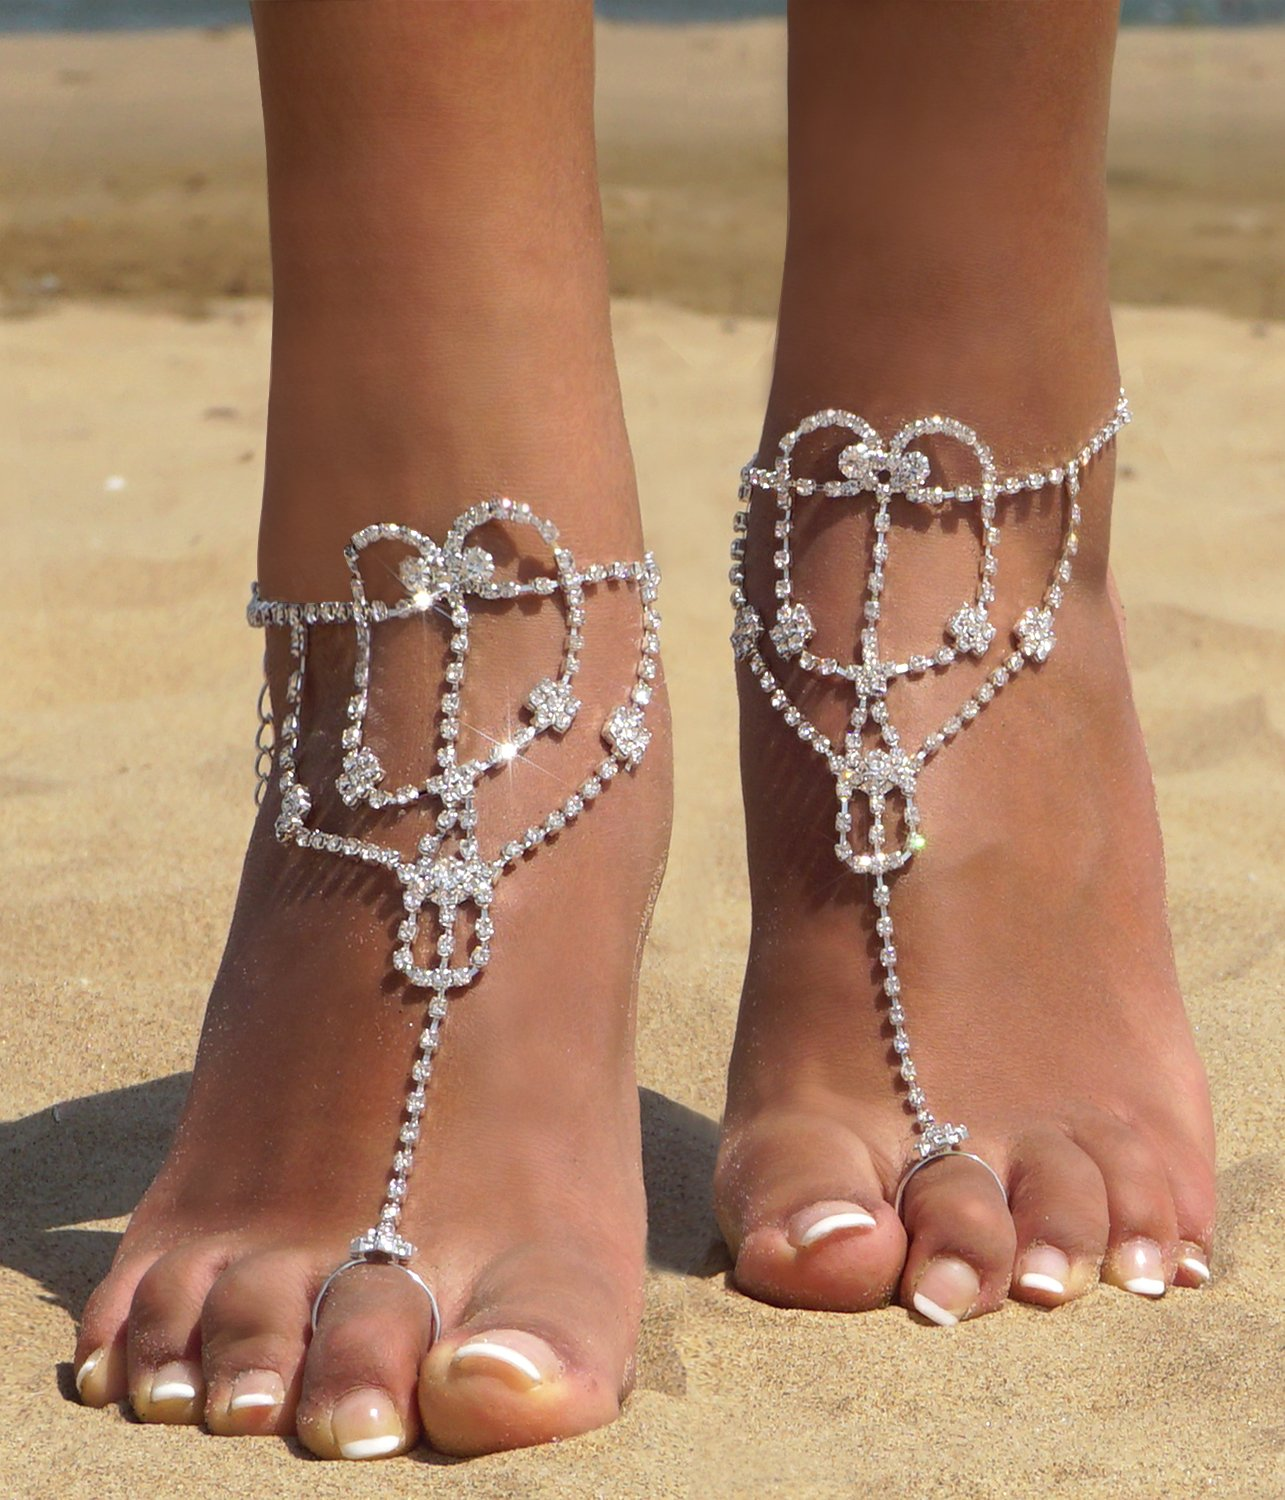 2 Pcs Barefoot Sandals with Rhinestone Toe Ring Beach Wedding Foot Jewelry Anklet Chain,Silver_Style 5 by Bellady (Image #2)